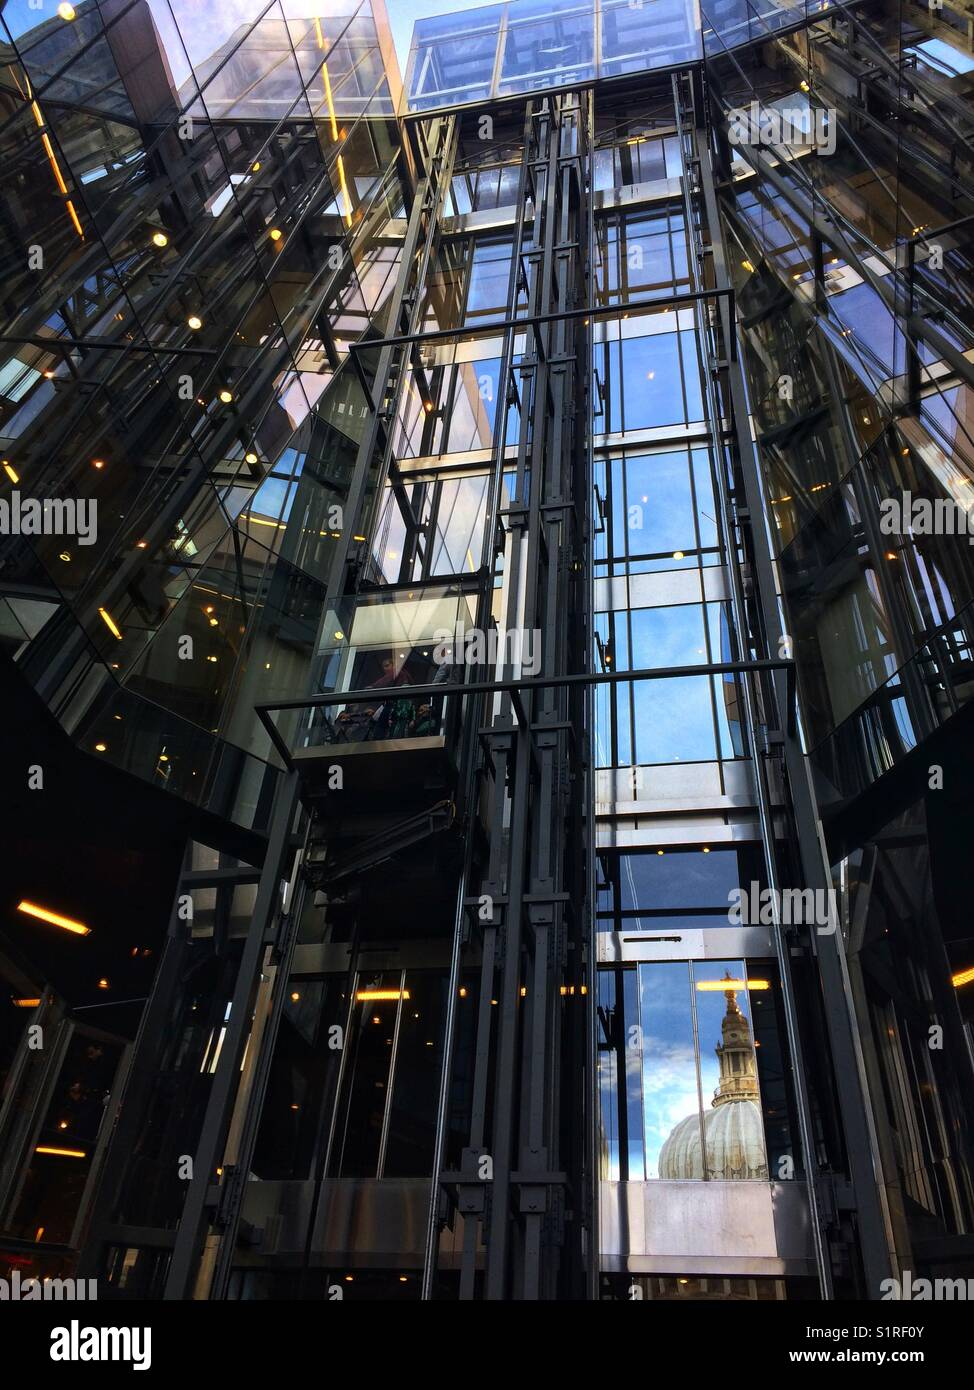 One New Change elevator with the reflection of St Paul's Cathedral. London - Stock Image